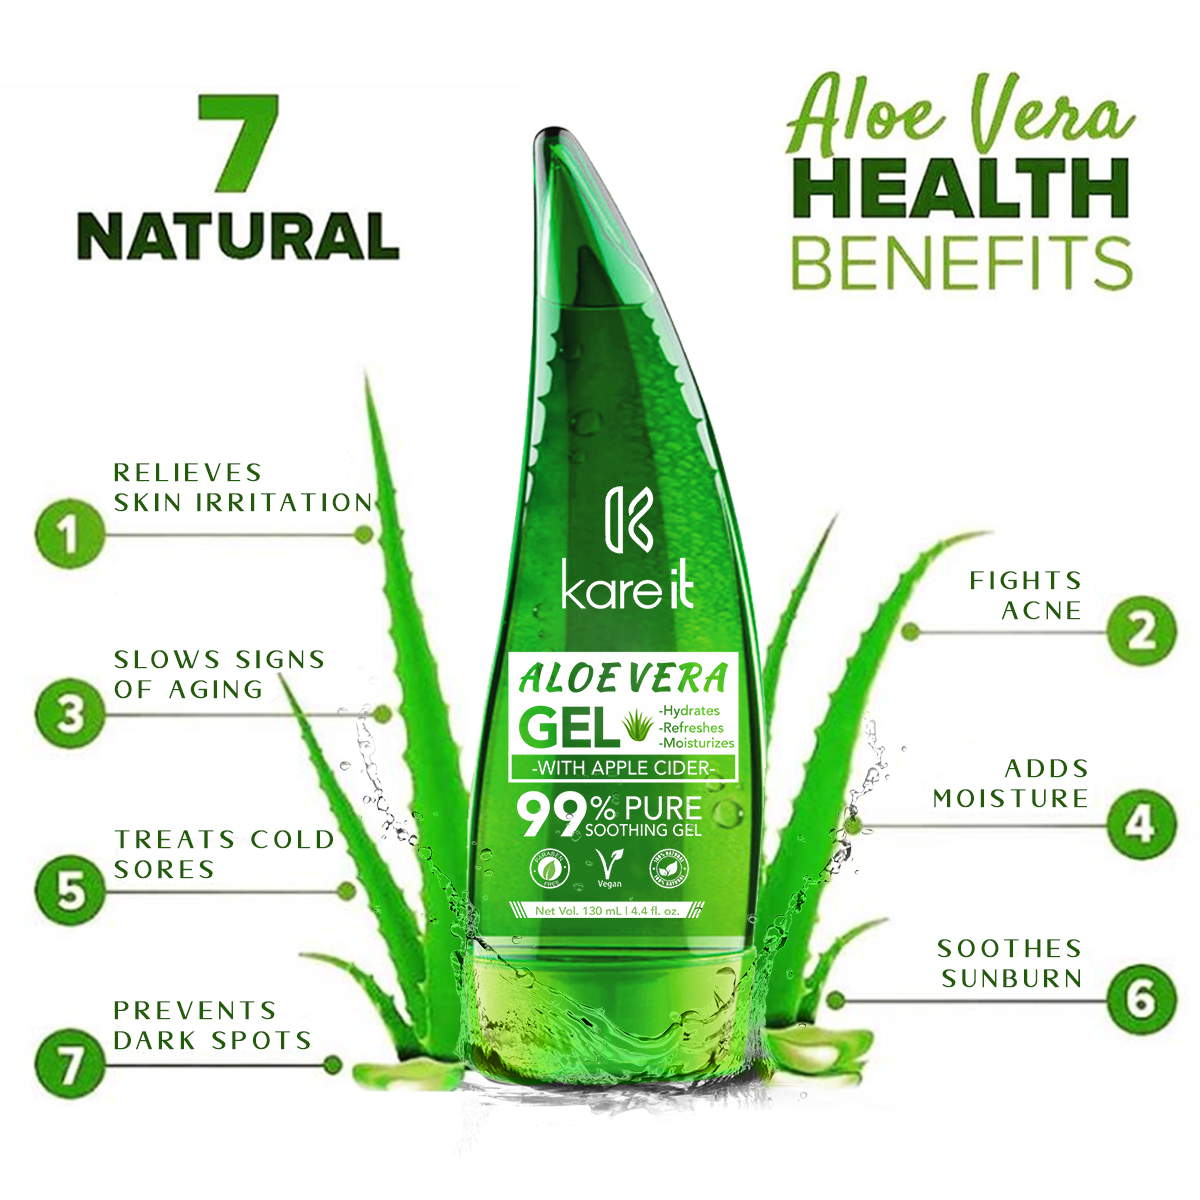 aloe vera gel for face